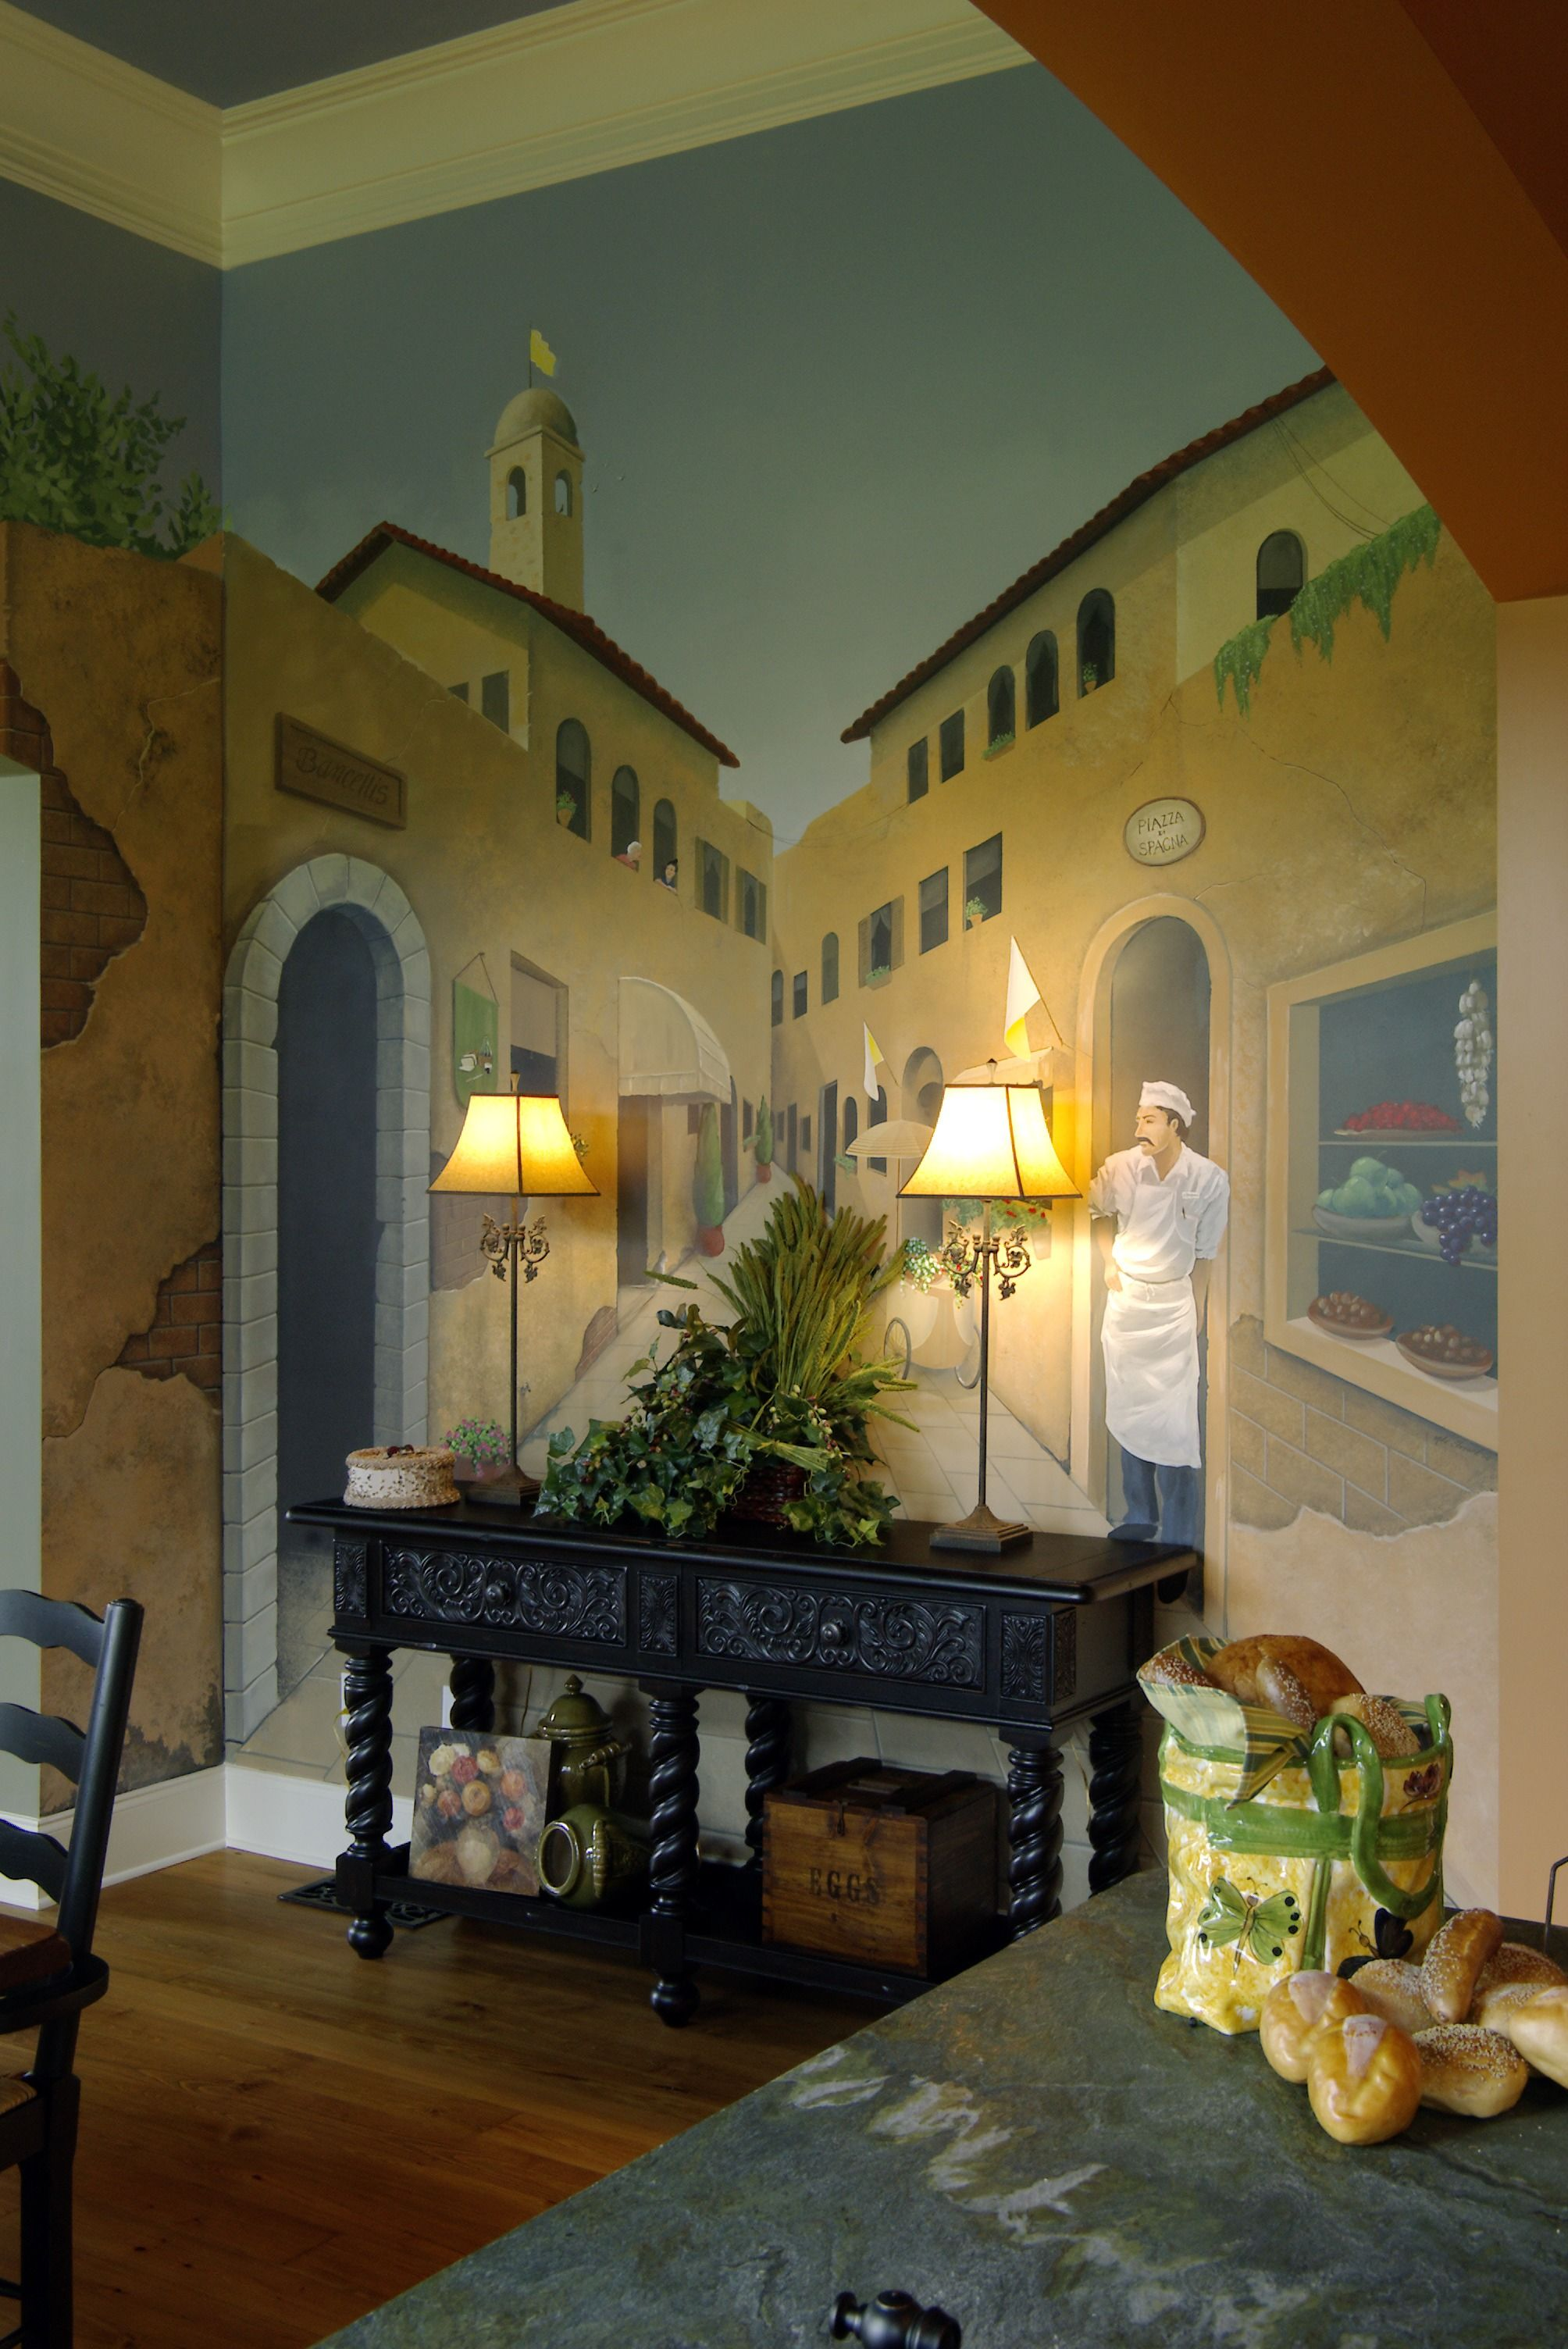 How Much Does It Cost To Remodel A Kitchen House Painting Cost